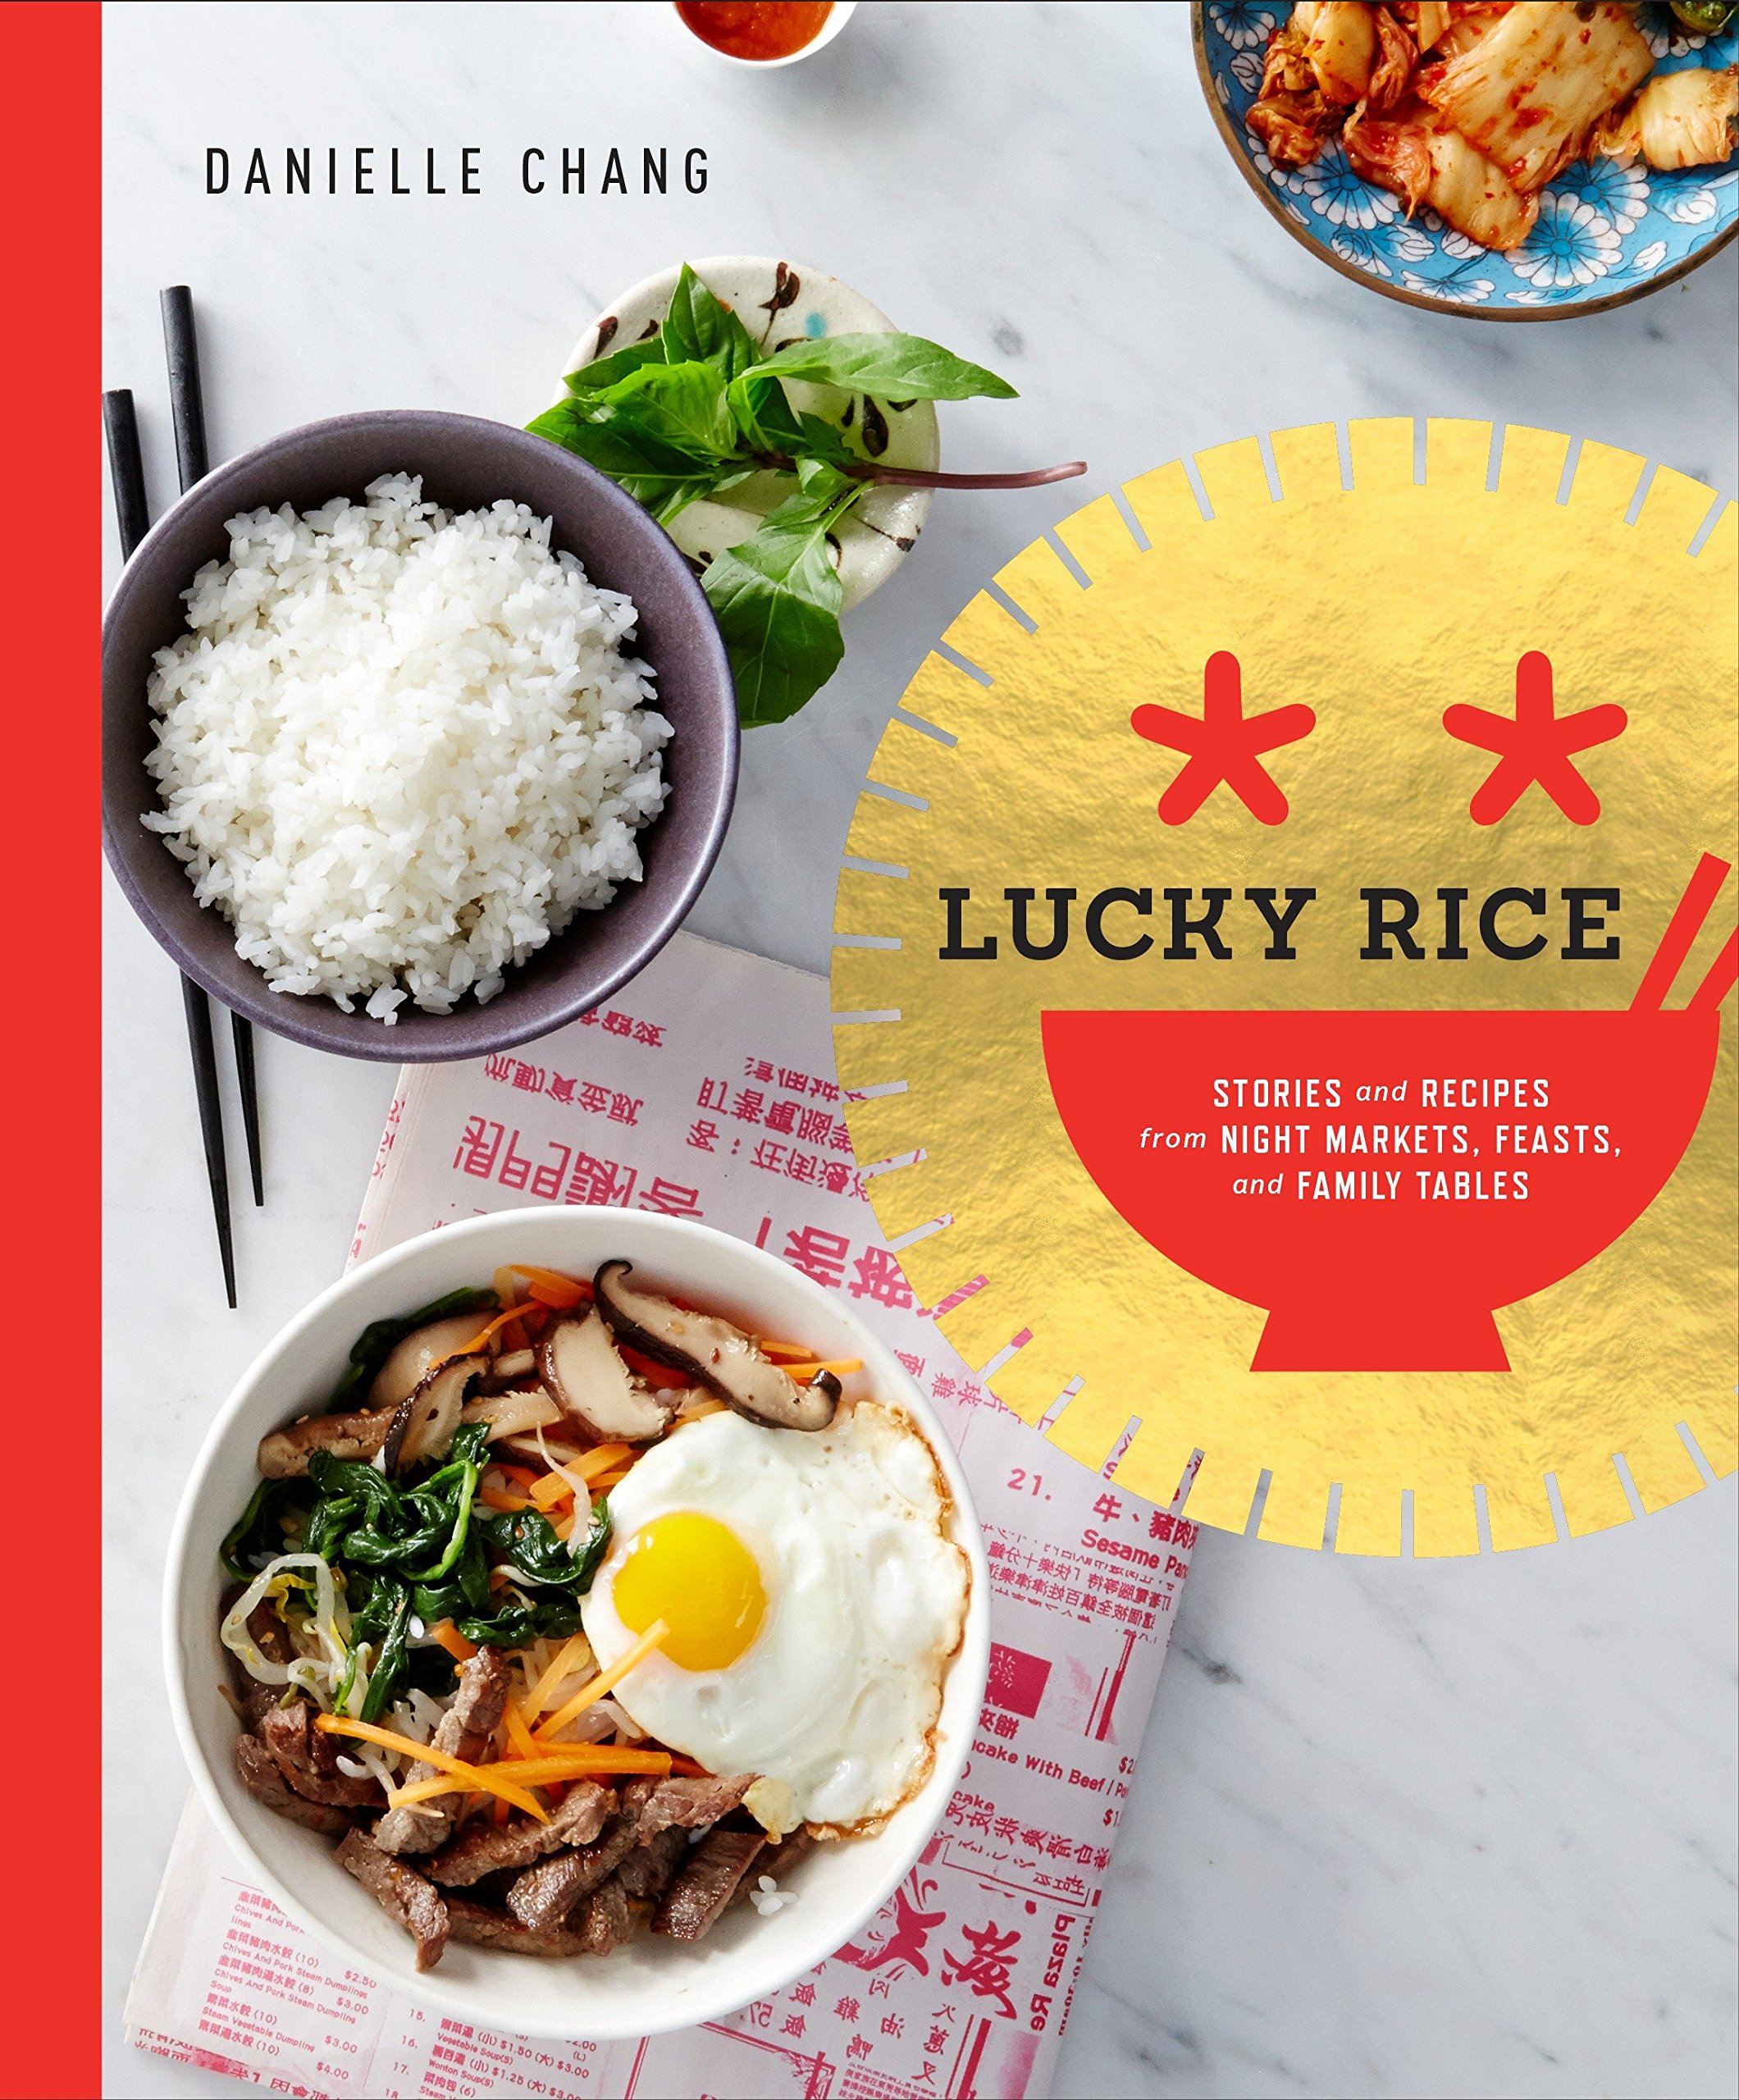 Image OfLucky Rice: Stories And Recipes From Night Markets, Feasts, And Family Tables: A Cookbook